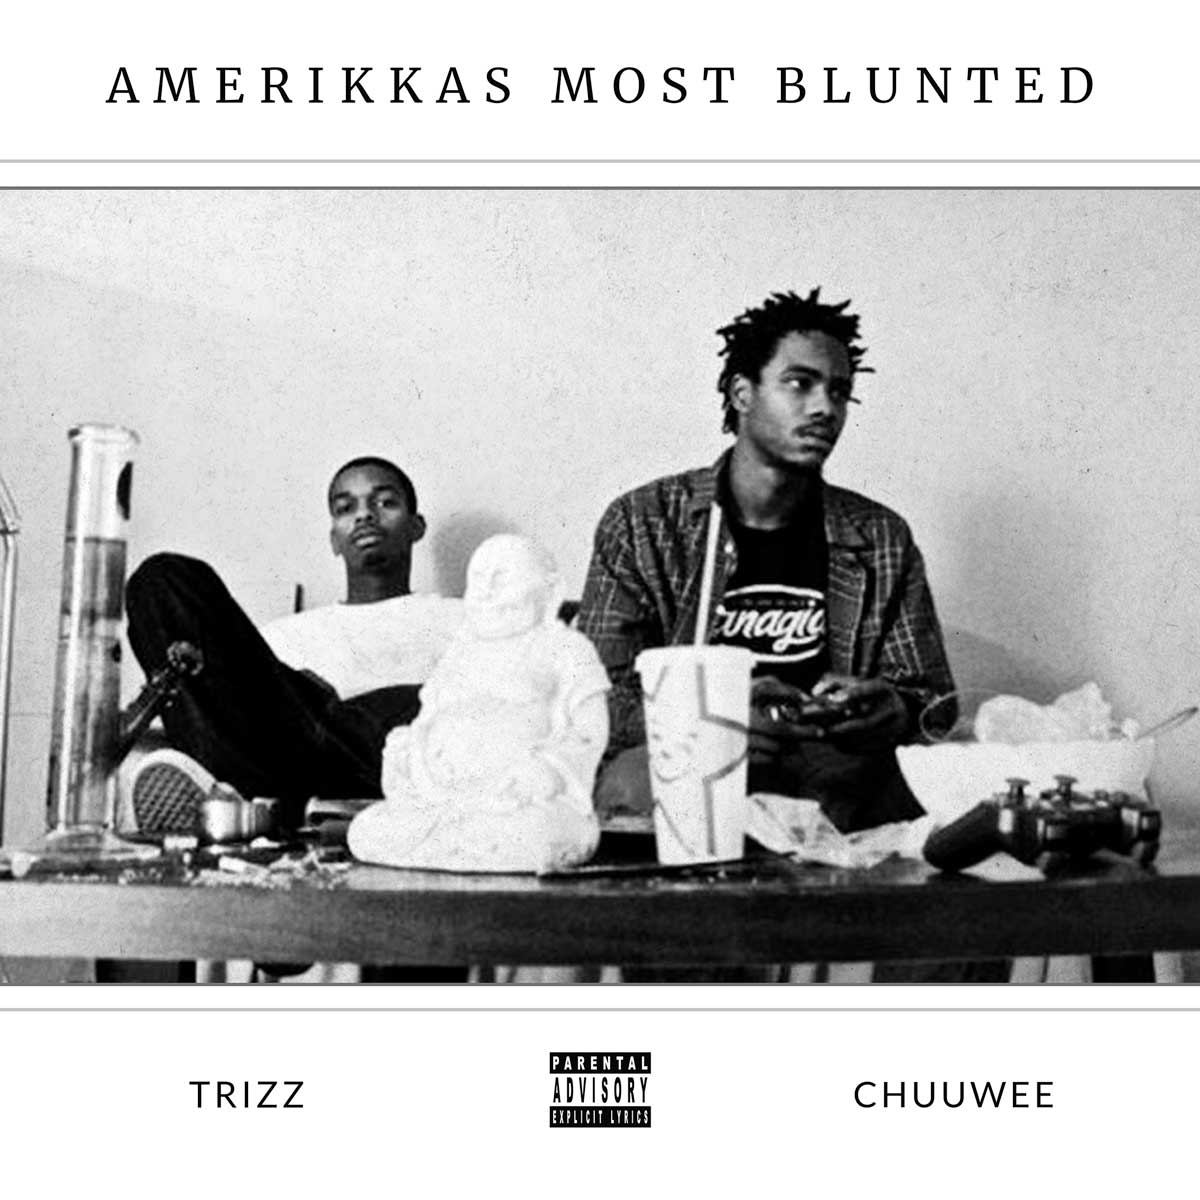 Chuuwee & Trizz - AmeriKKa's Most Blunted